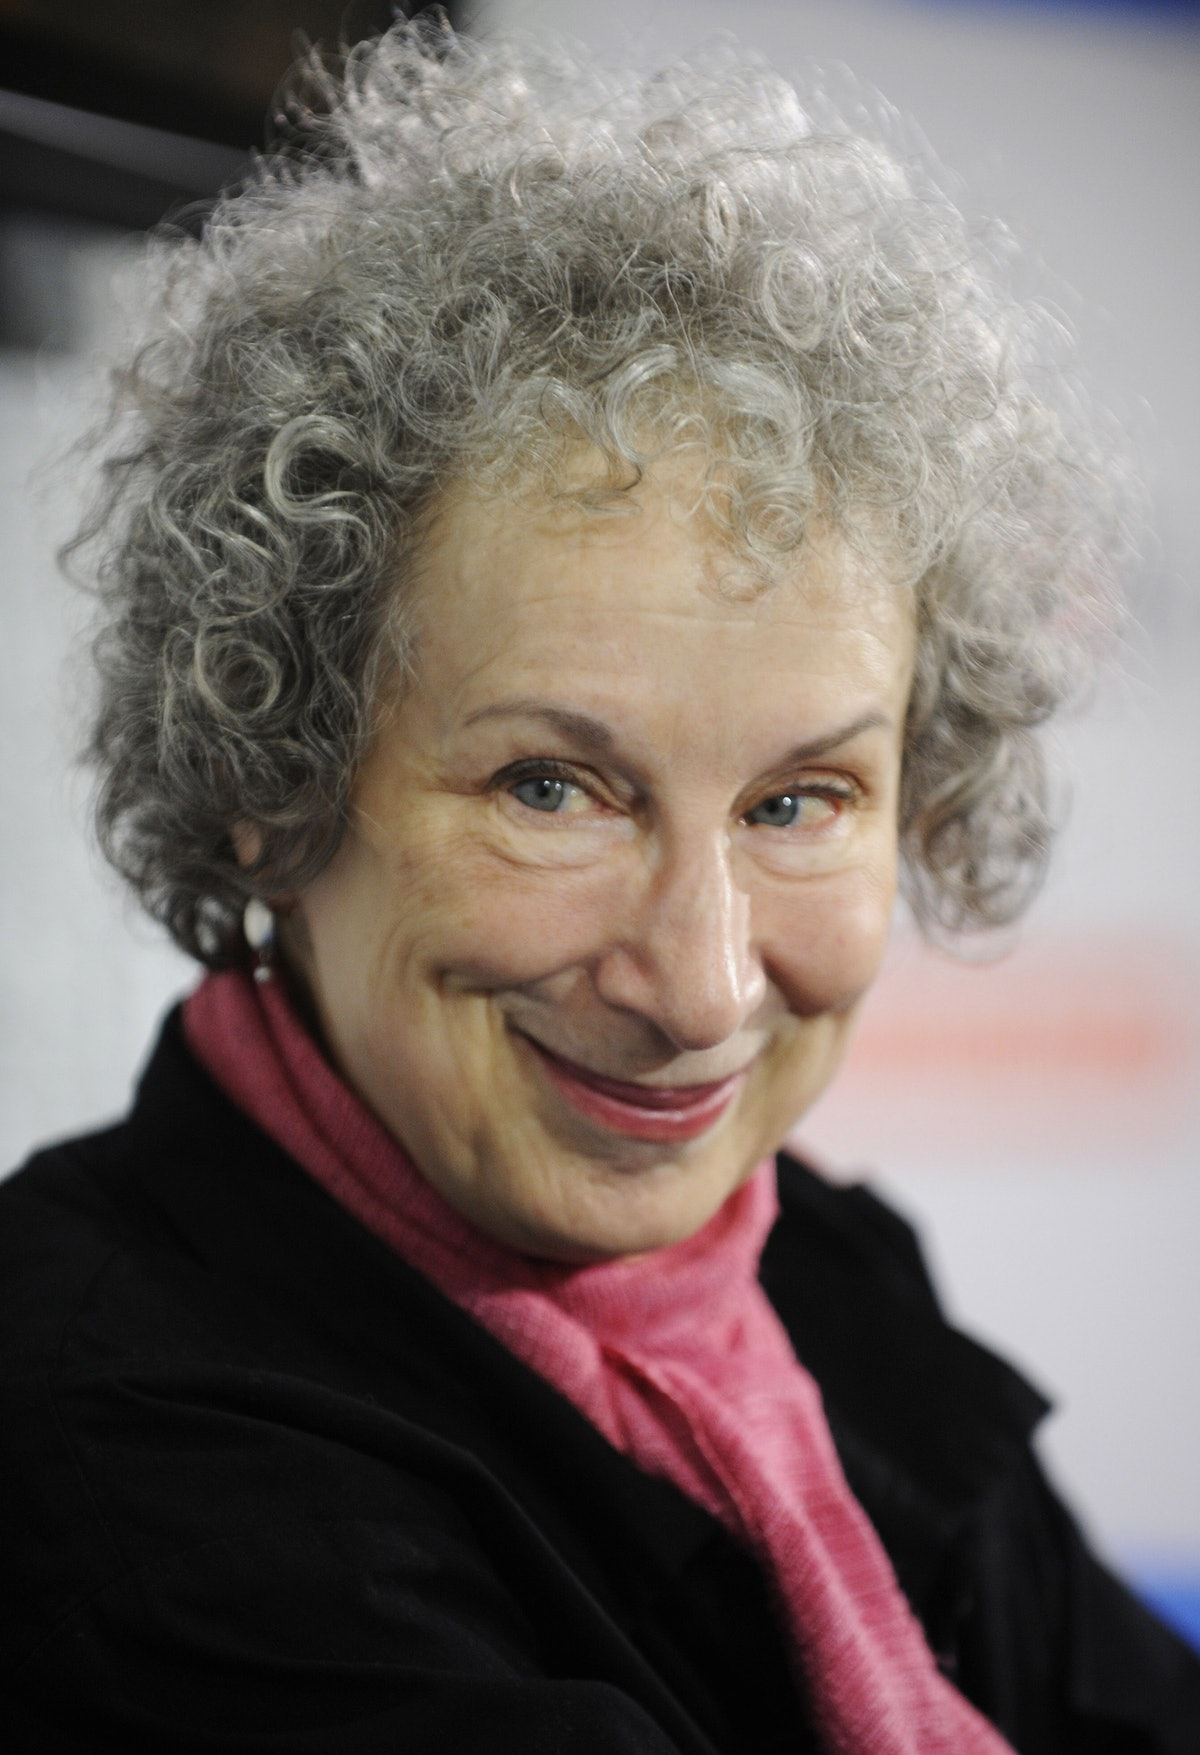 true north by margaret atwood Free essays on true north margaret atwood get help with your writing 1 through 30.